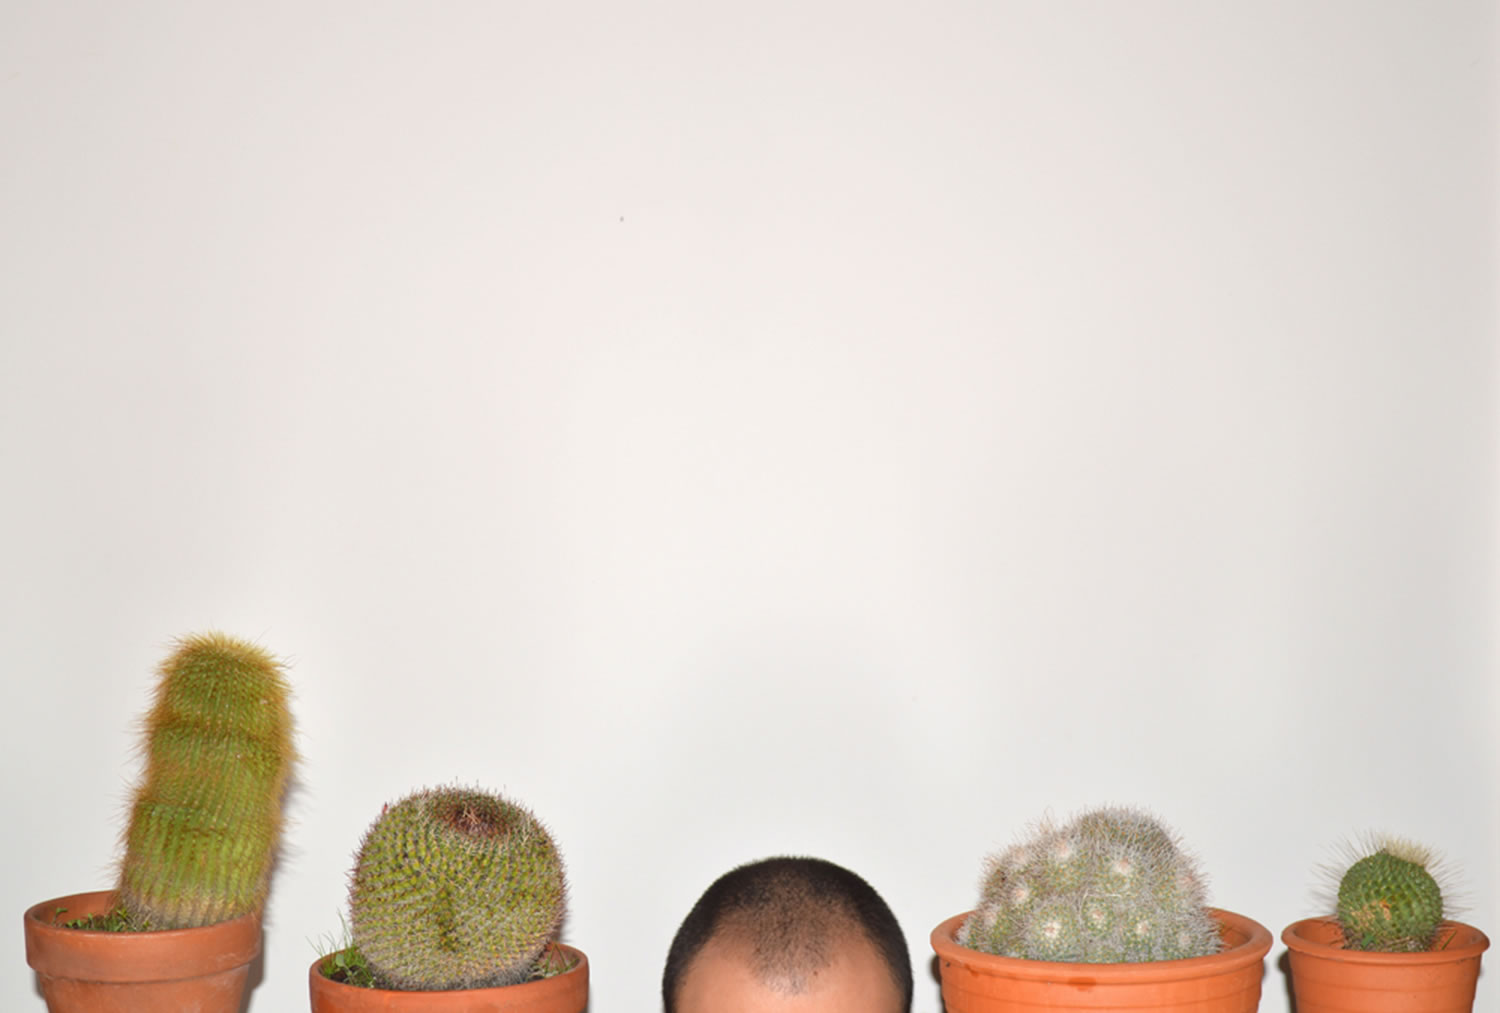 blad head and cactuses